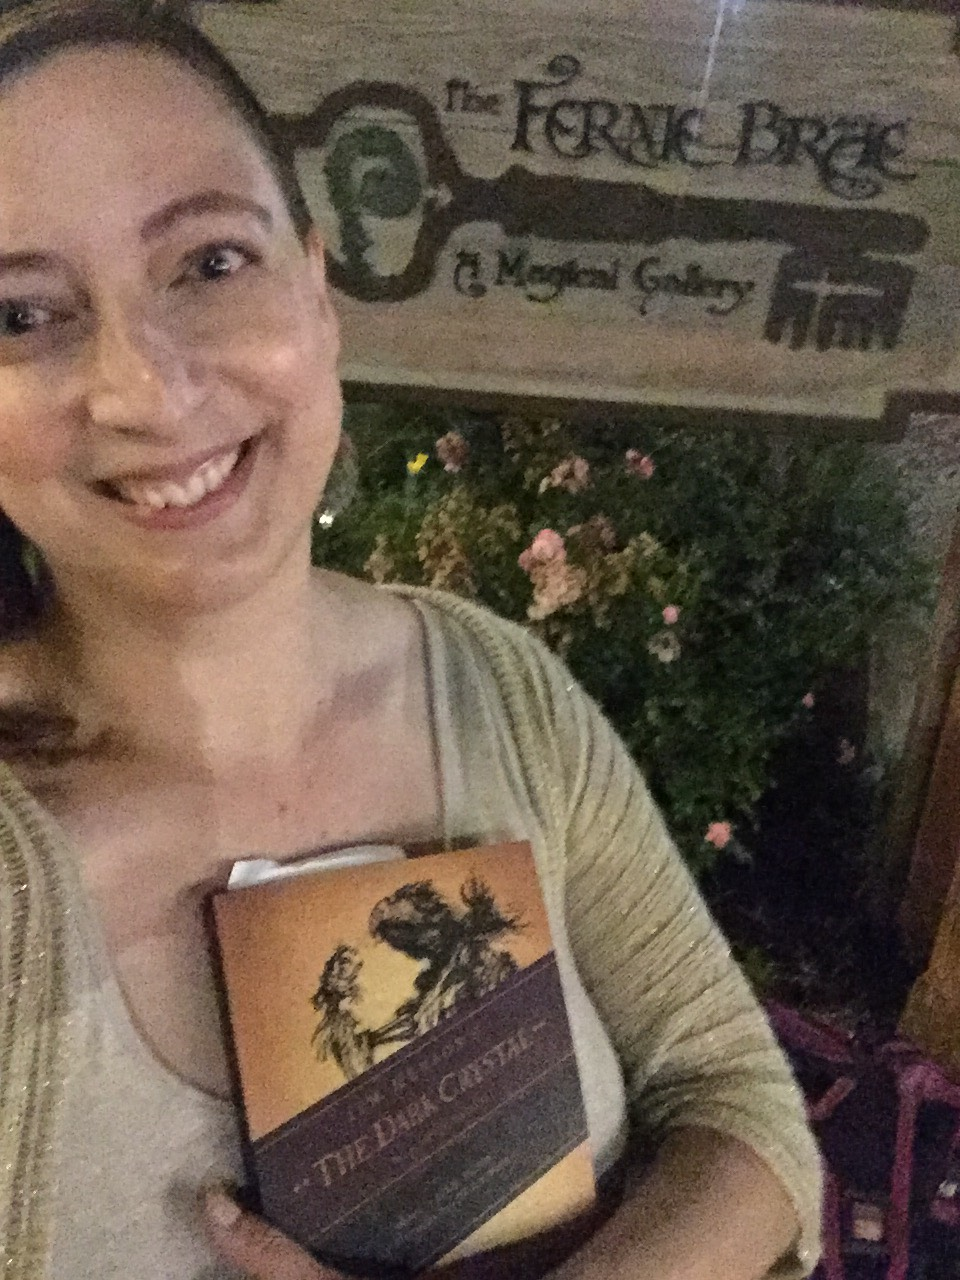 "I am smiling at the camera, holding a book, standing in front of a wooden sign that reads ""The Fernie Brae: A Magical Gallery"""